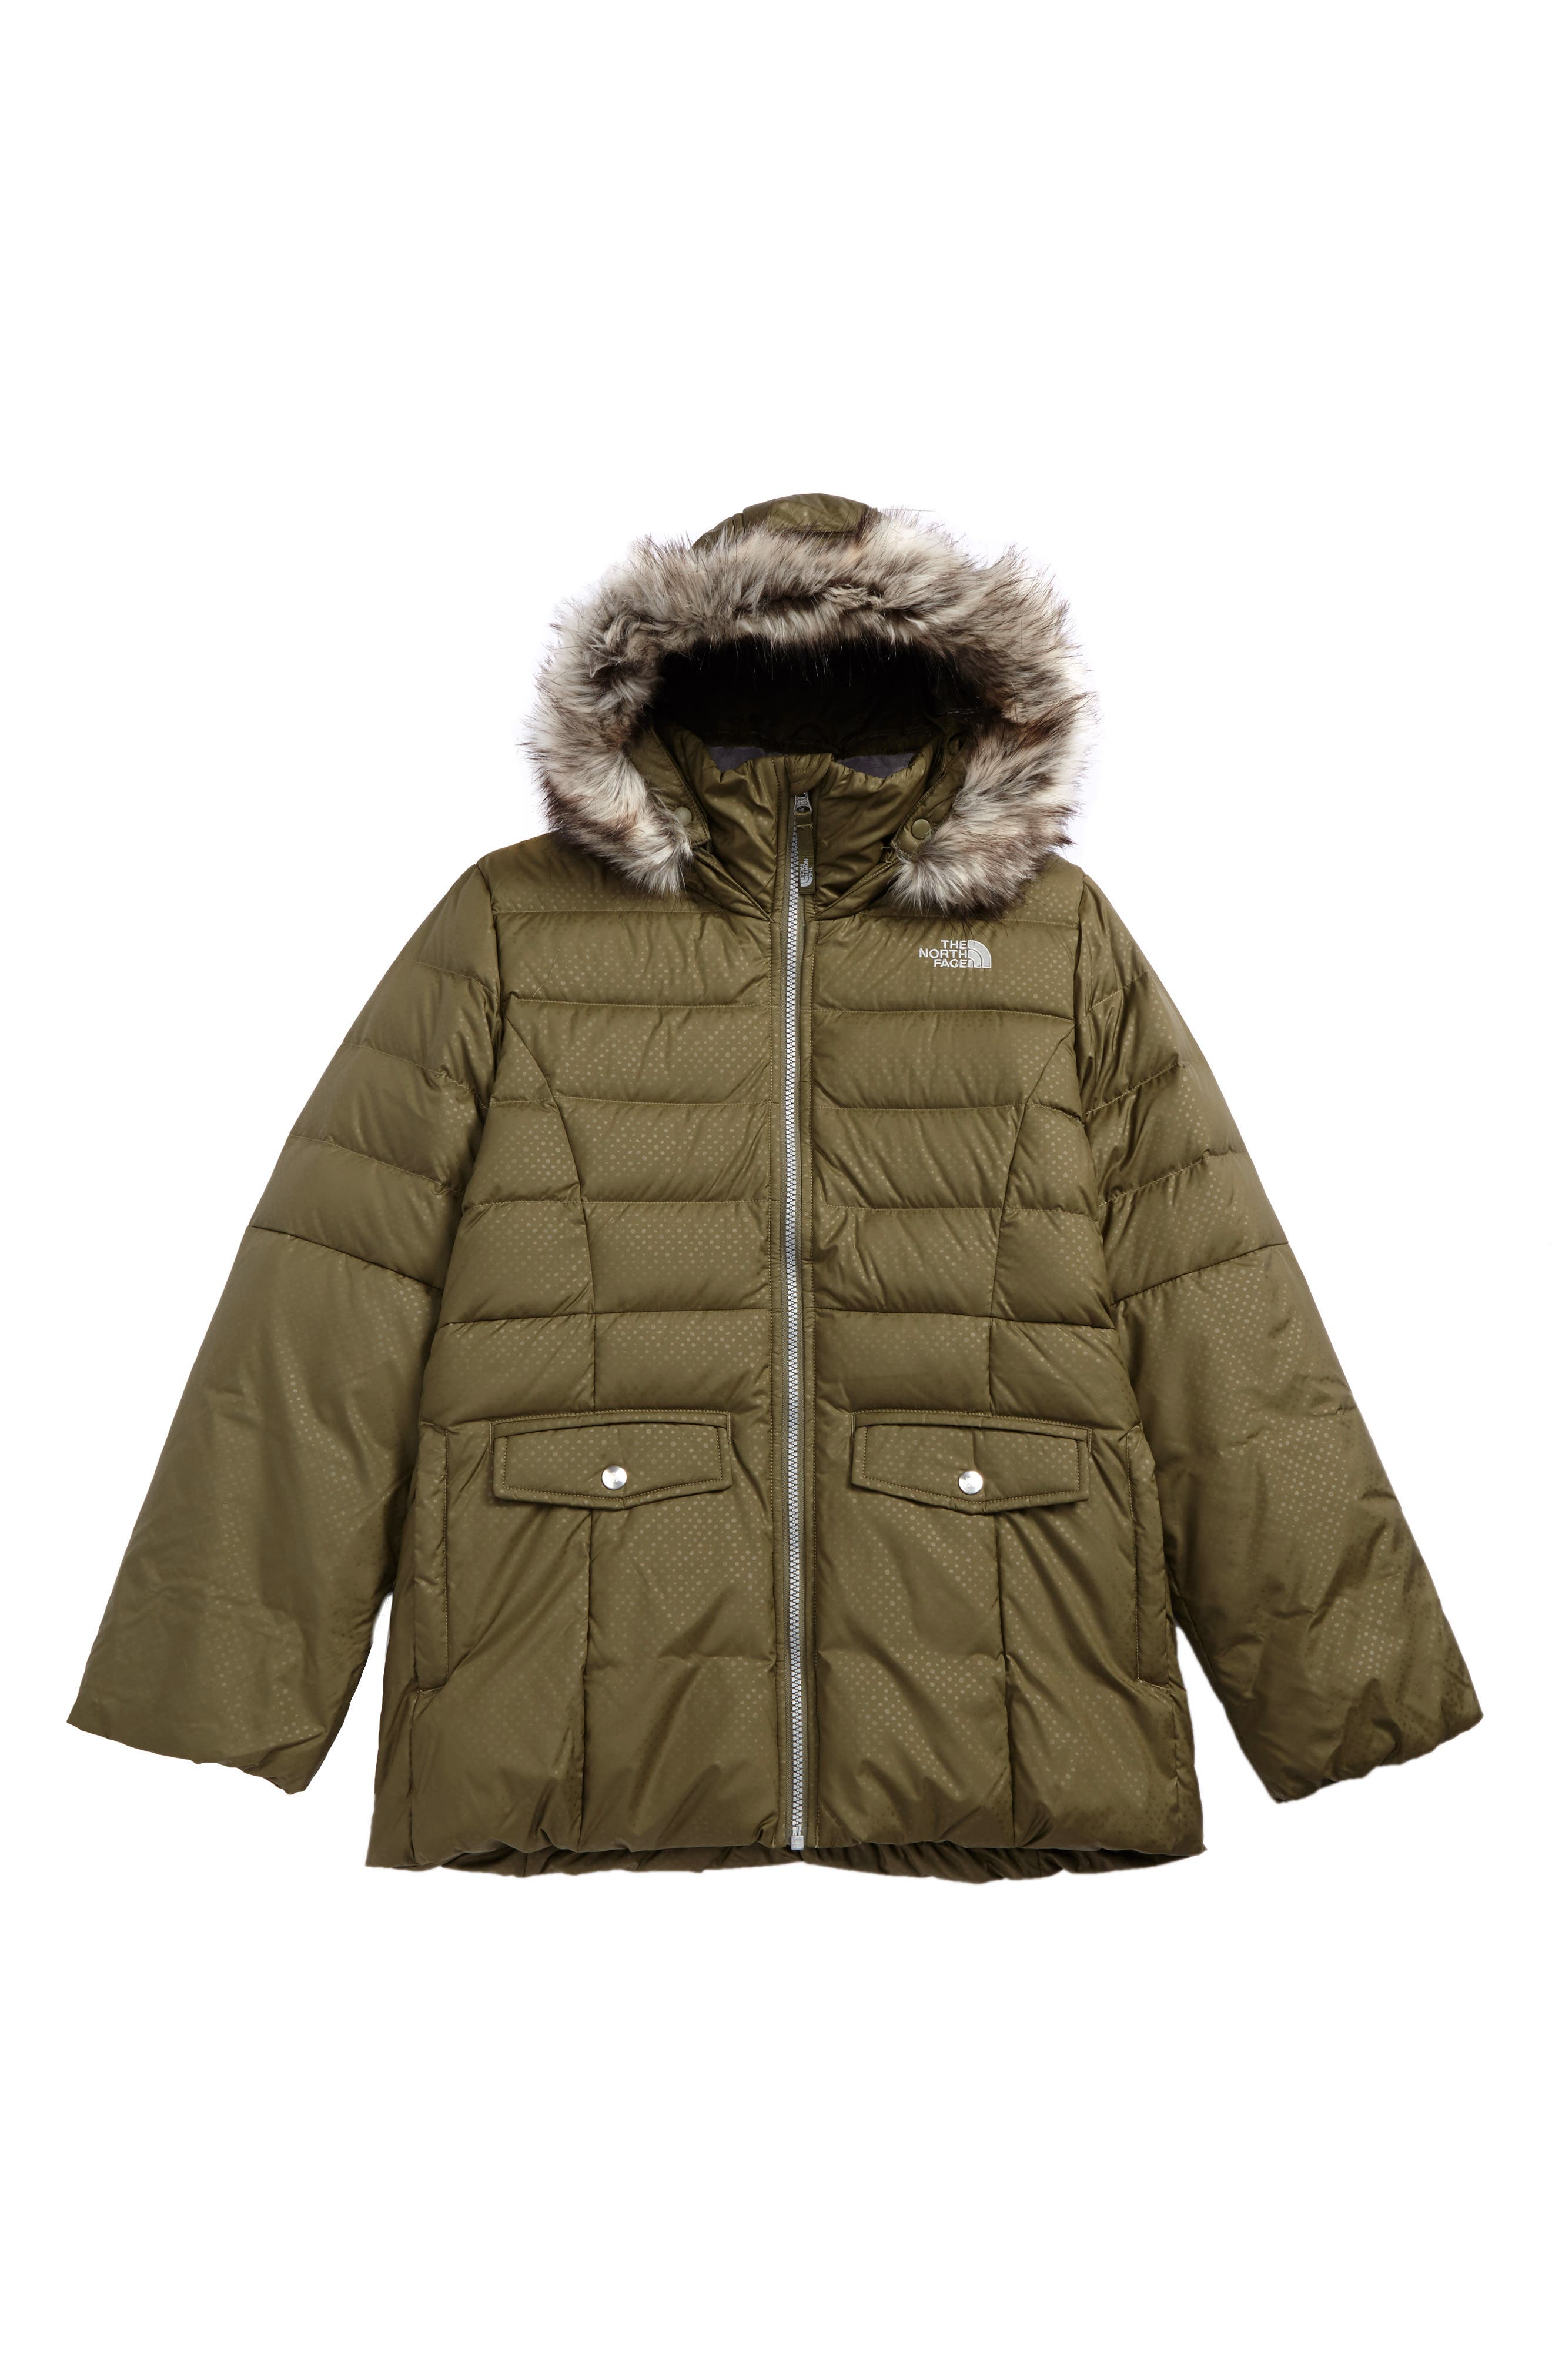 Alternate Image 1 Selected - The North Face Gotham 2.0 550-Fill Down Jacket (Little Girls & Big Girls)